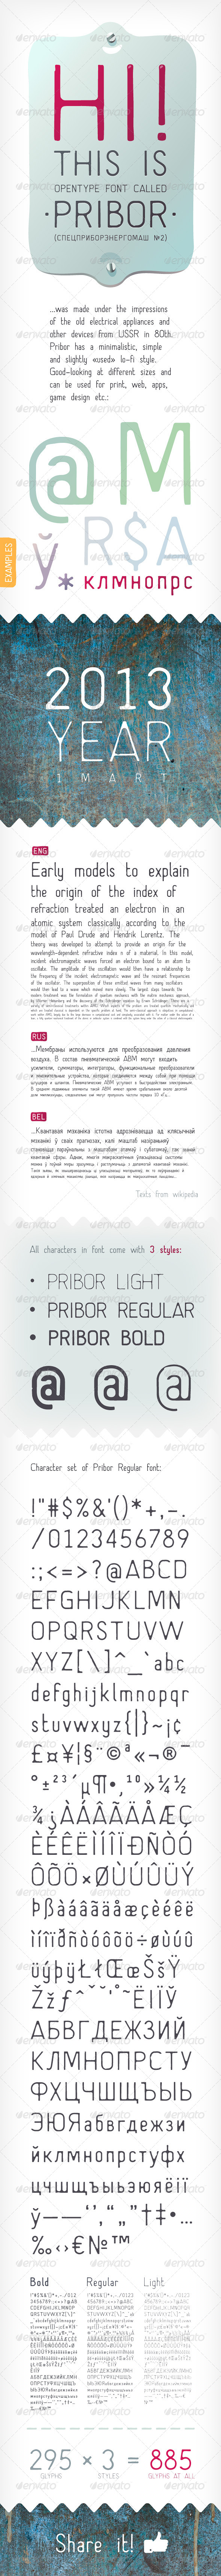 GraphicRiver Pribor Clean Lo-Fi Stencil Font With Cyrillic 4174149